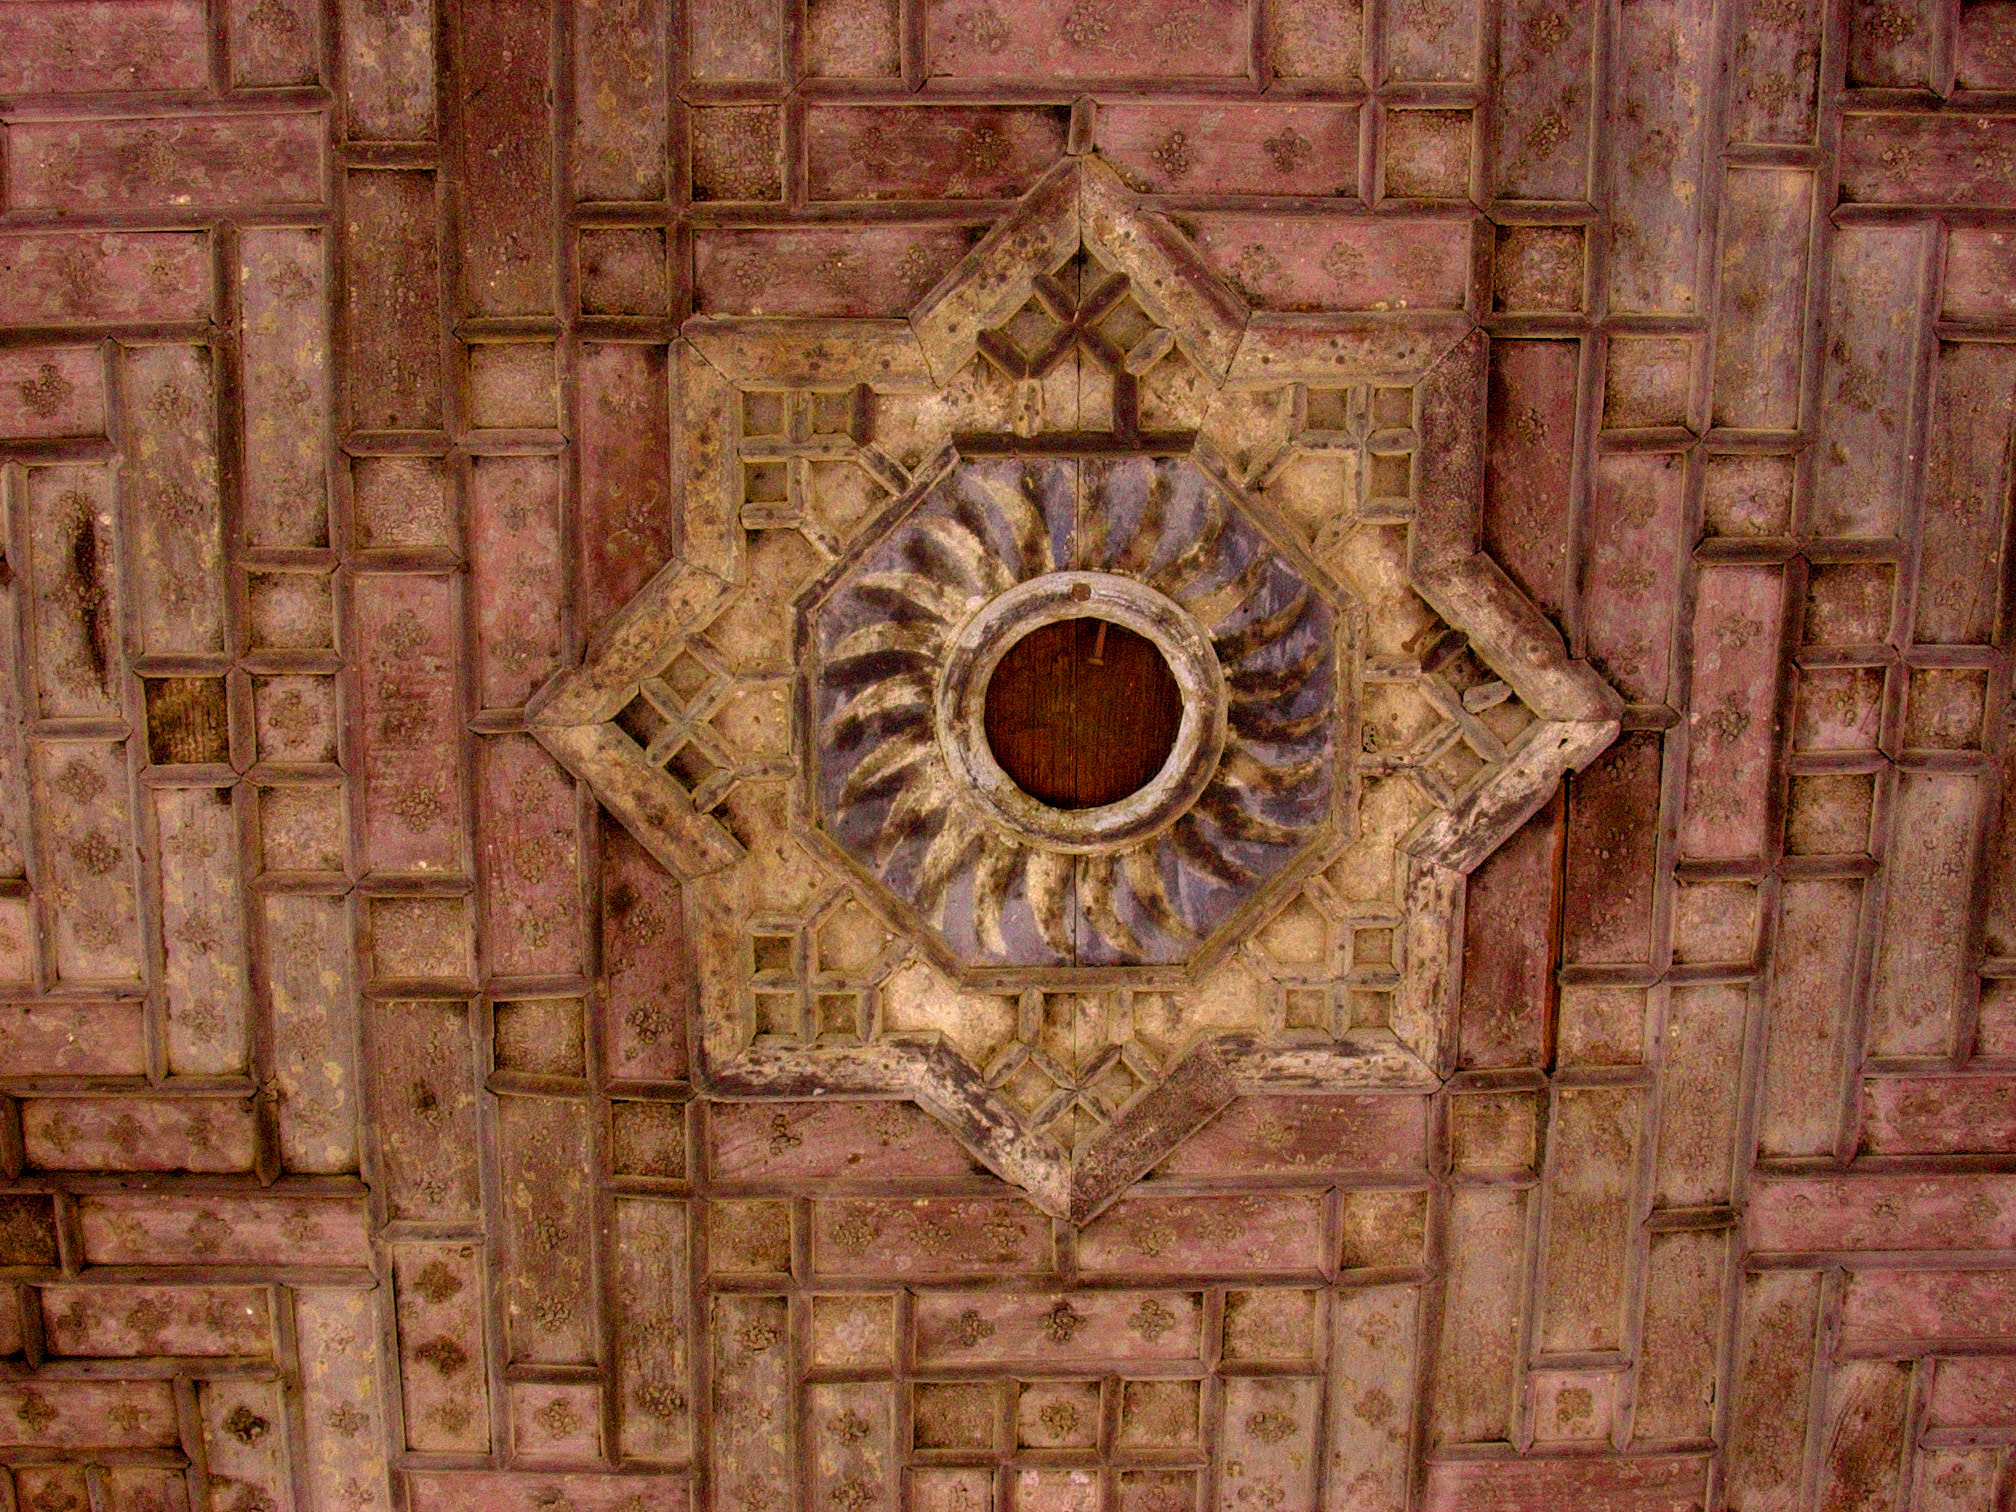 Detail of the ceiling in a pavilion in Shalimar Gardens, Lahore, Pakistan, 23 January, 2004, photograph by Gordon Brent Ingram